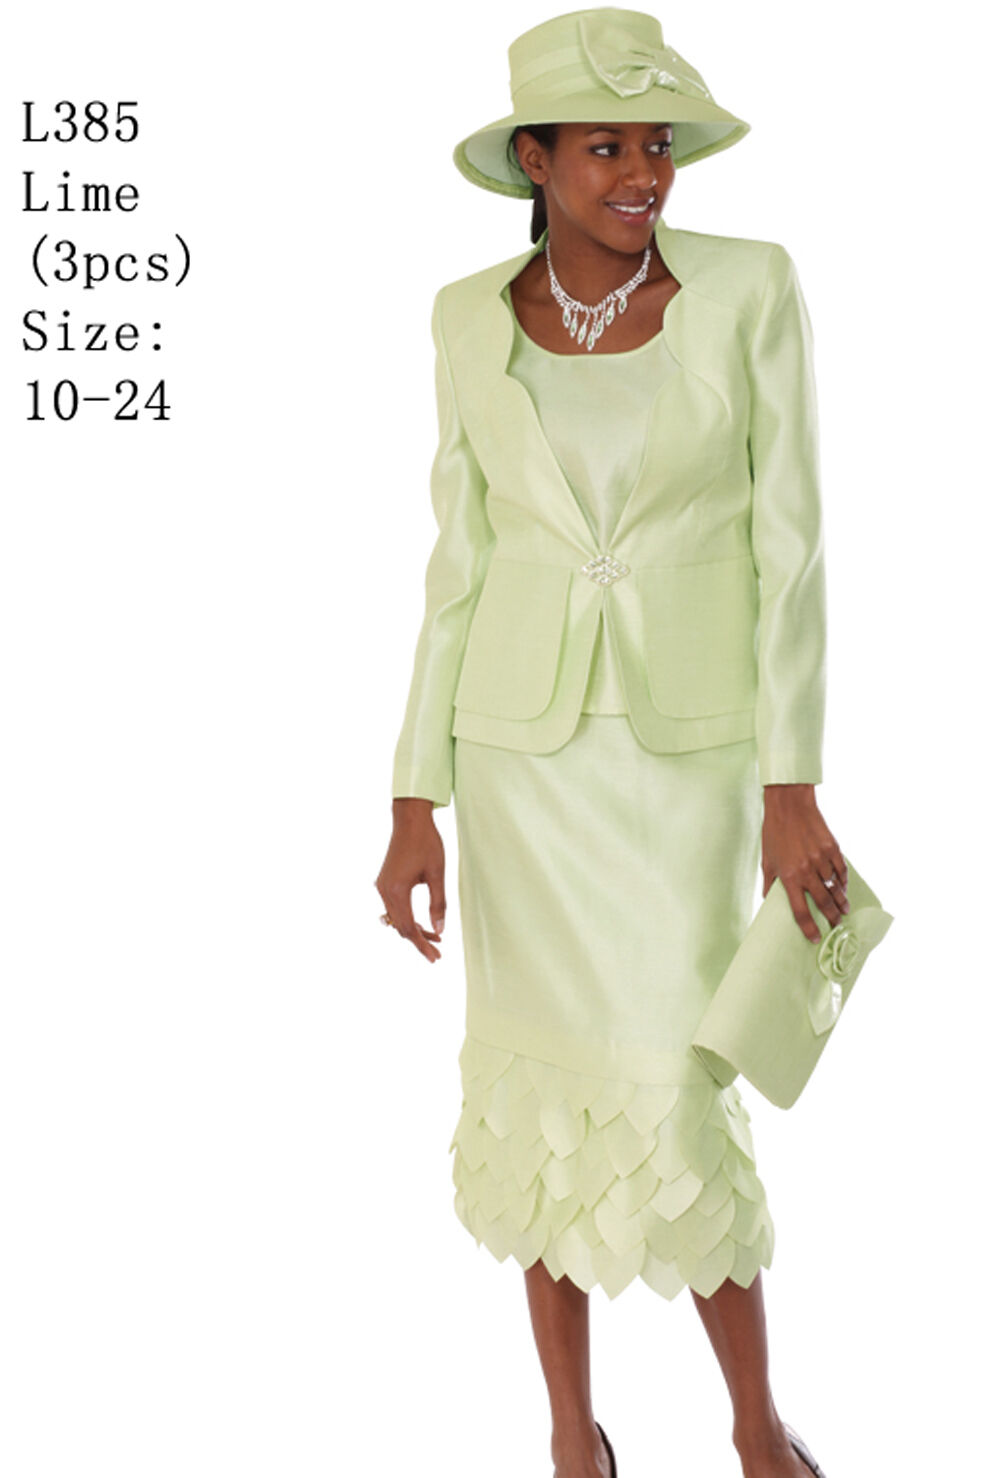 8481925c2f285 Details about Sunday Best Women Church Suit - Soft Crepe Fabric - Standard  to Plus Size L385